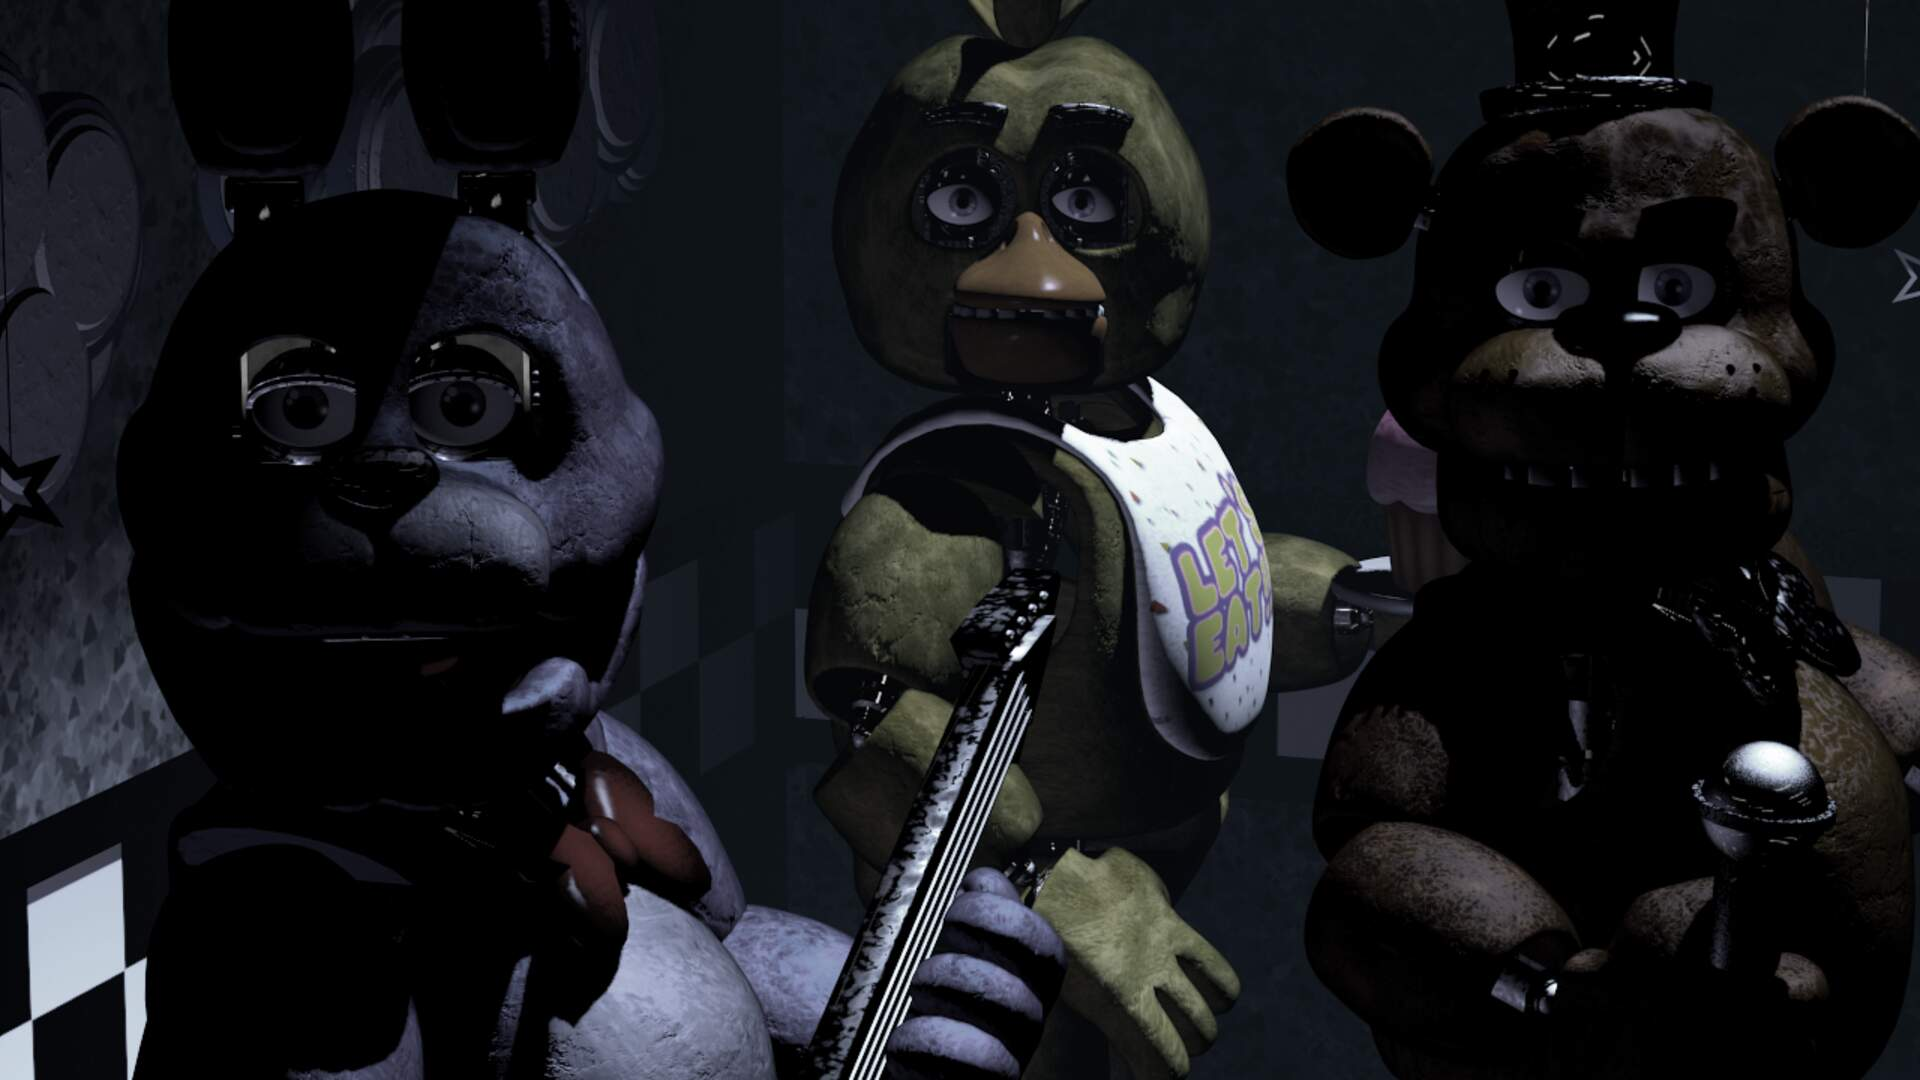 I Played Five Nights at Freddy's VR and Now Never Want to Enter a Pizza Joint Again